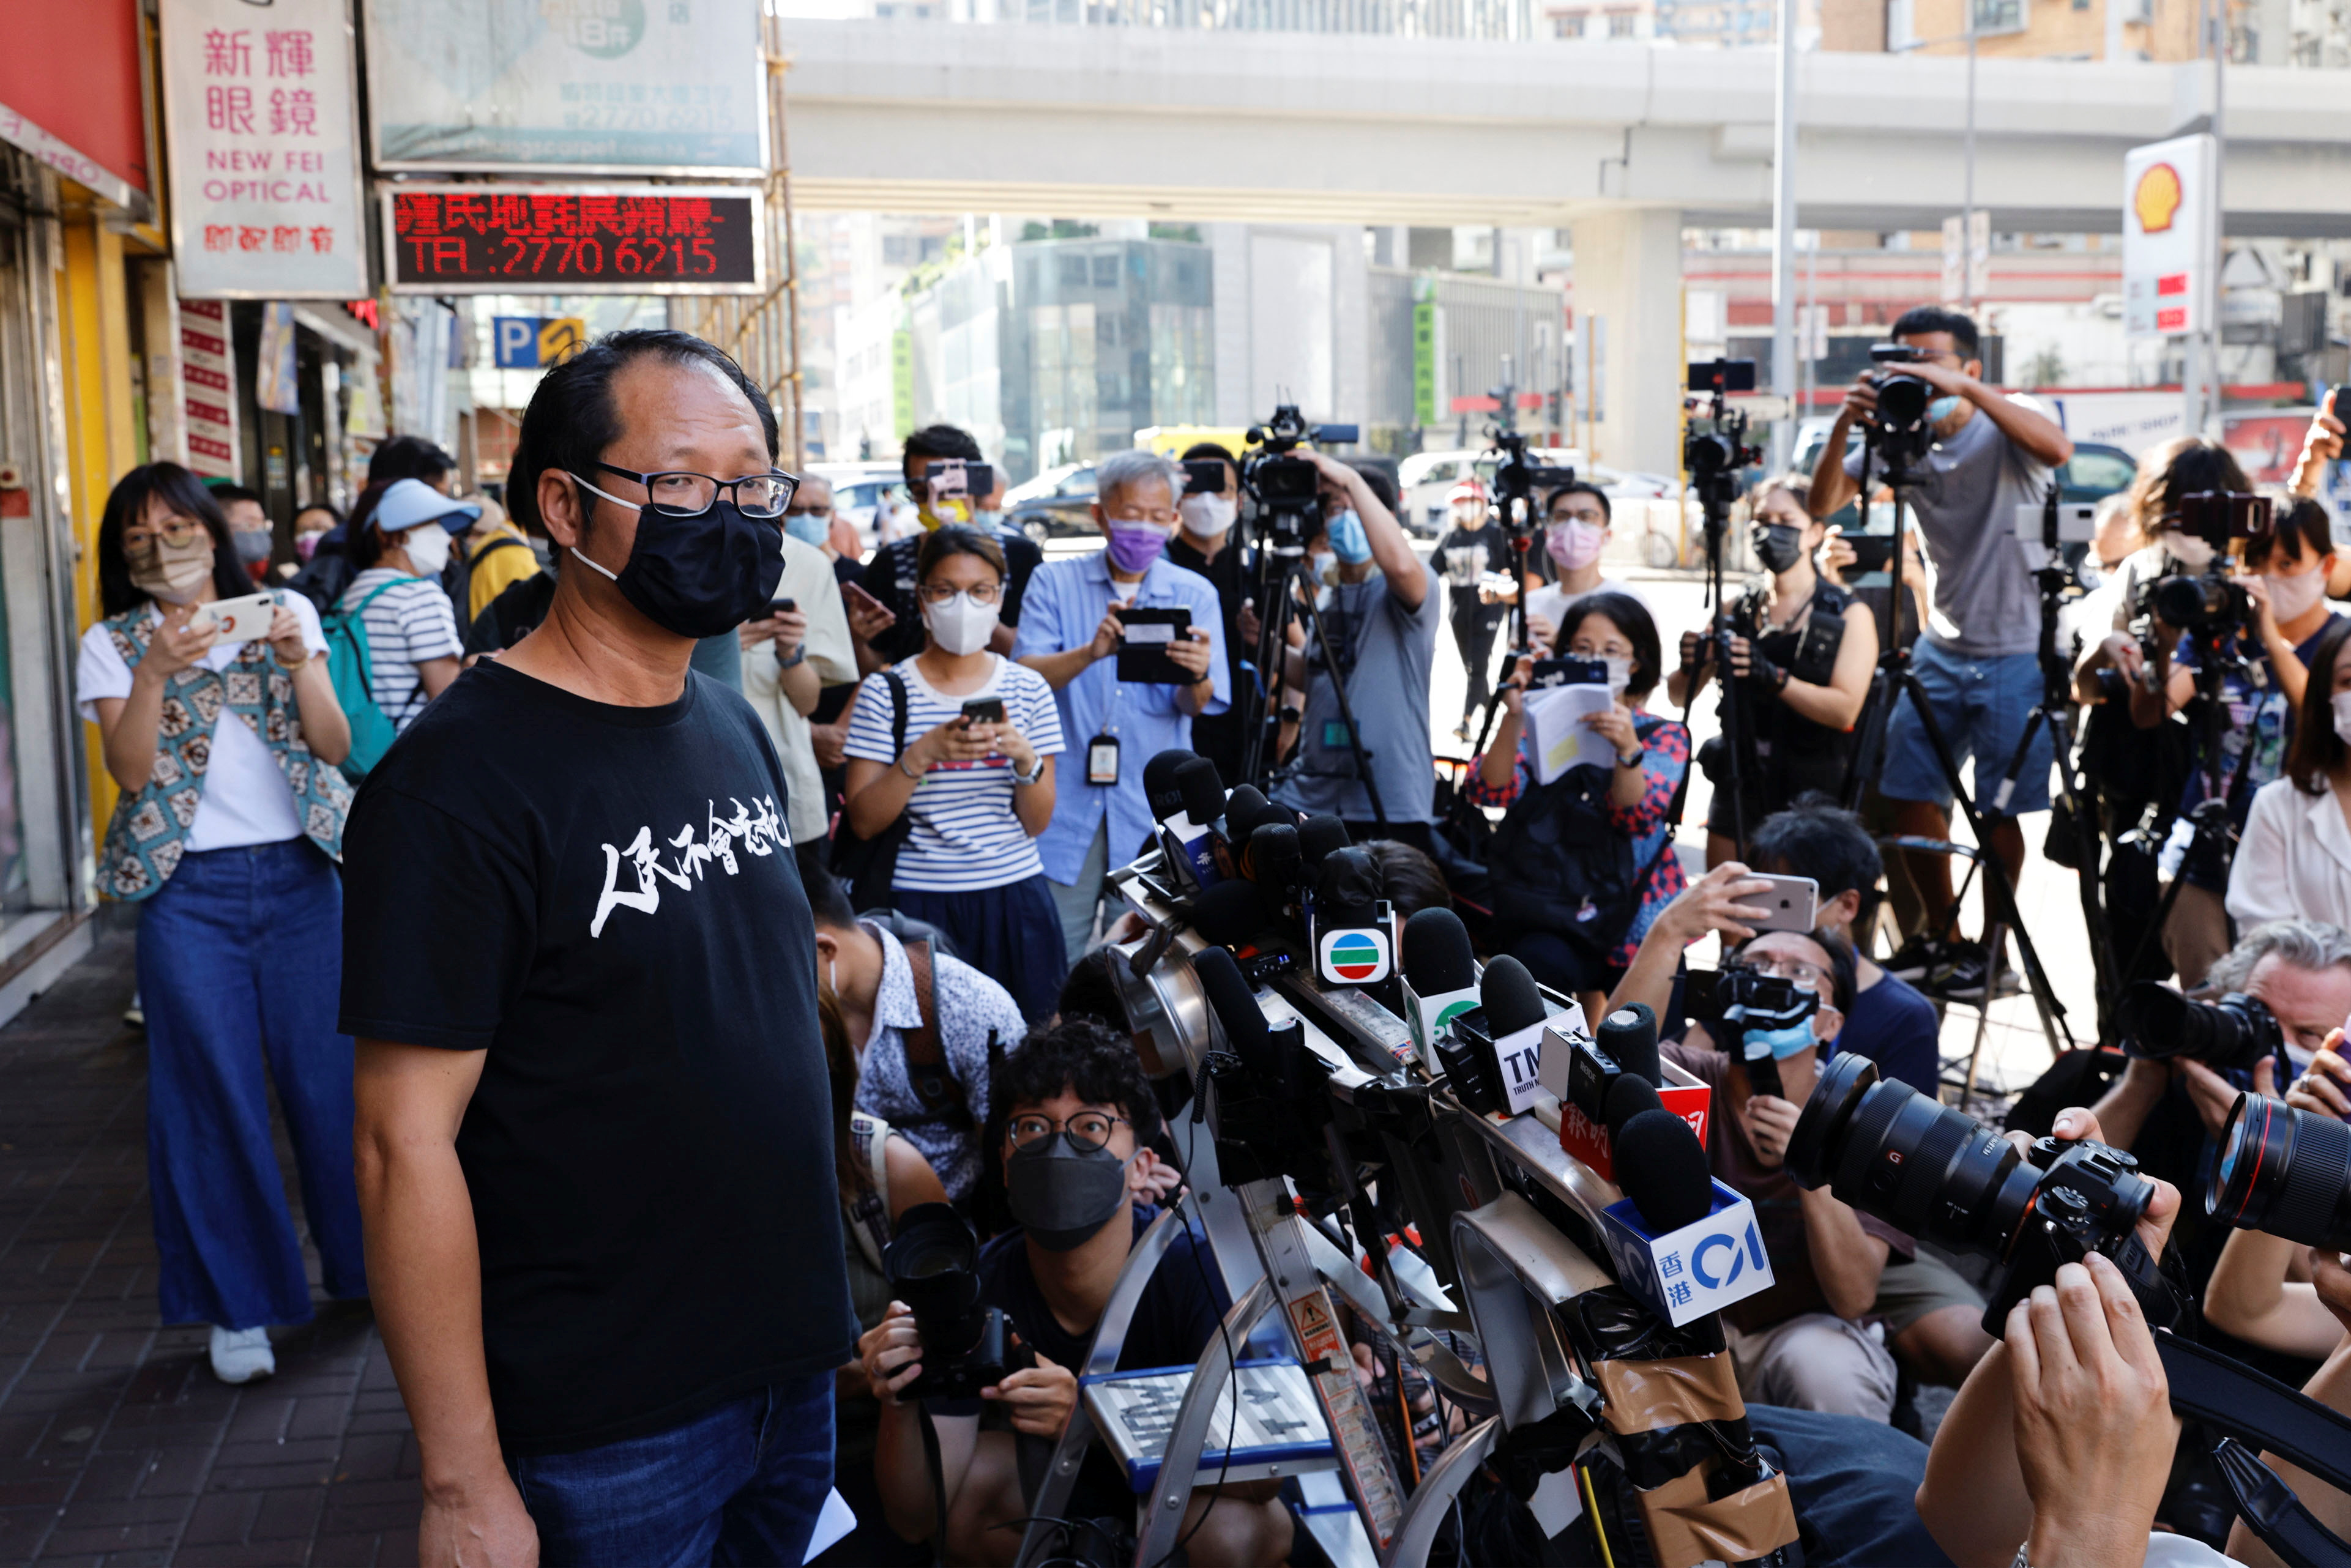 Richard Tsoi, secretary of the Hong Kong Alliance in Support of Patriotic Democratic Movements of China, speaks to media after it was announced that the group will disband, in Hong Kong, China September 25, 2021. REUTERS/Tyrone Siu